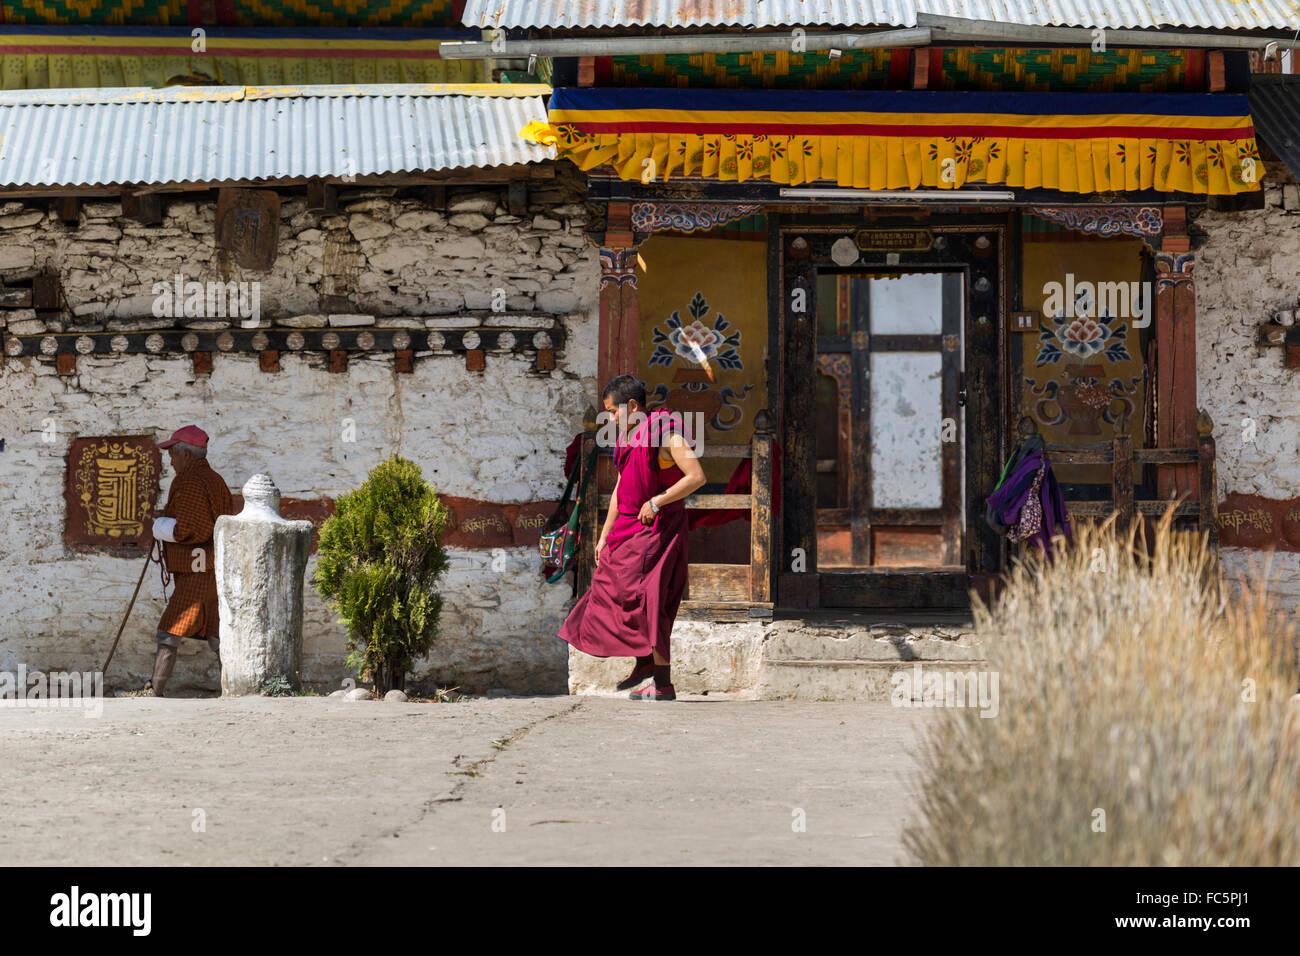 Monk at Tamshing Buddhist Temple, Jakar, Bumthang, Central Bhutan, Asia Stock Photo